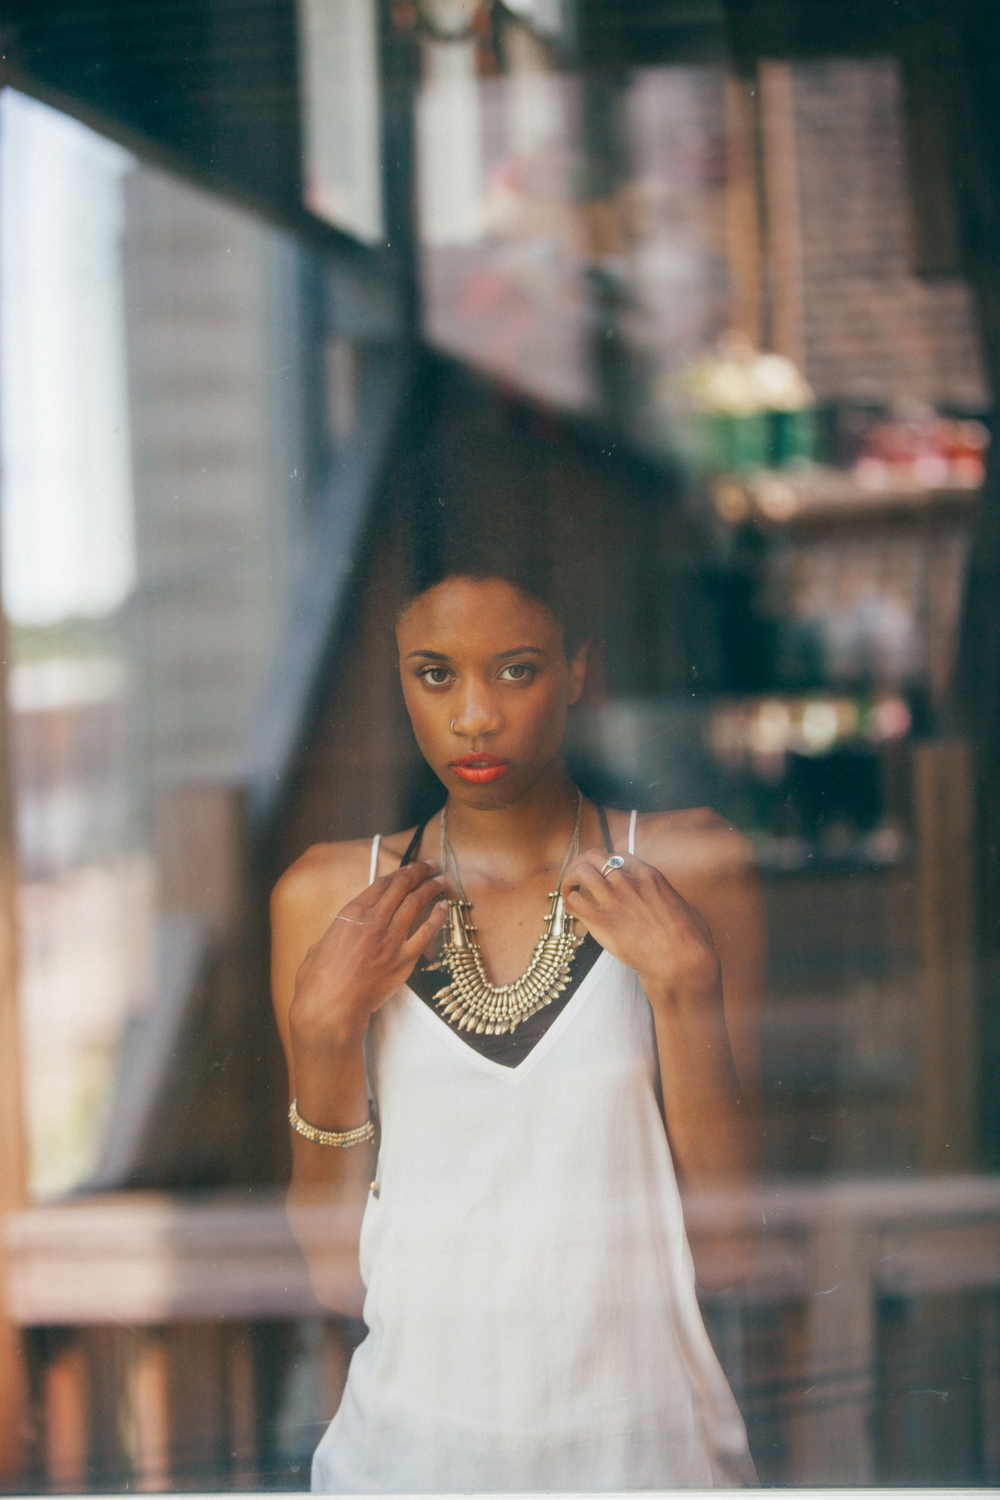 Window Reflection Urban Outfitters Lifestyle Photography with The Finches